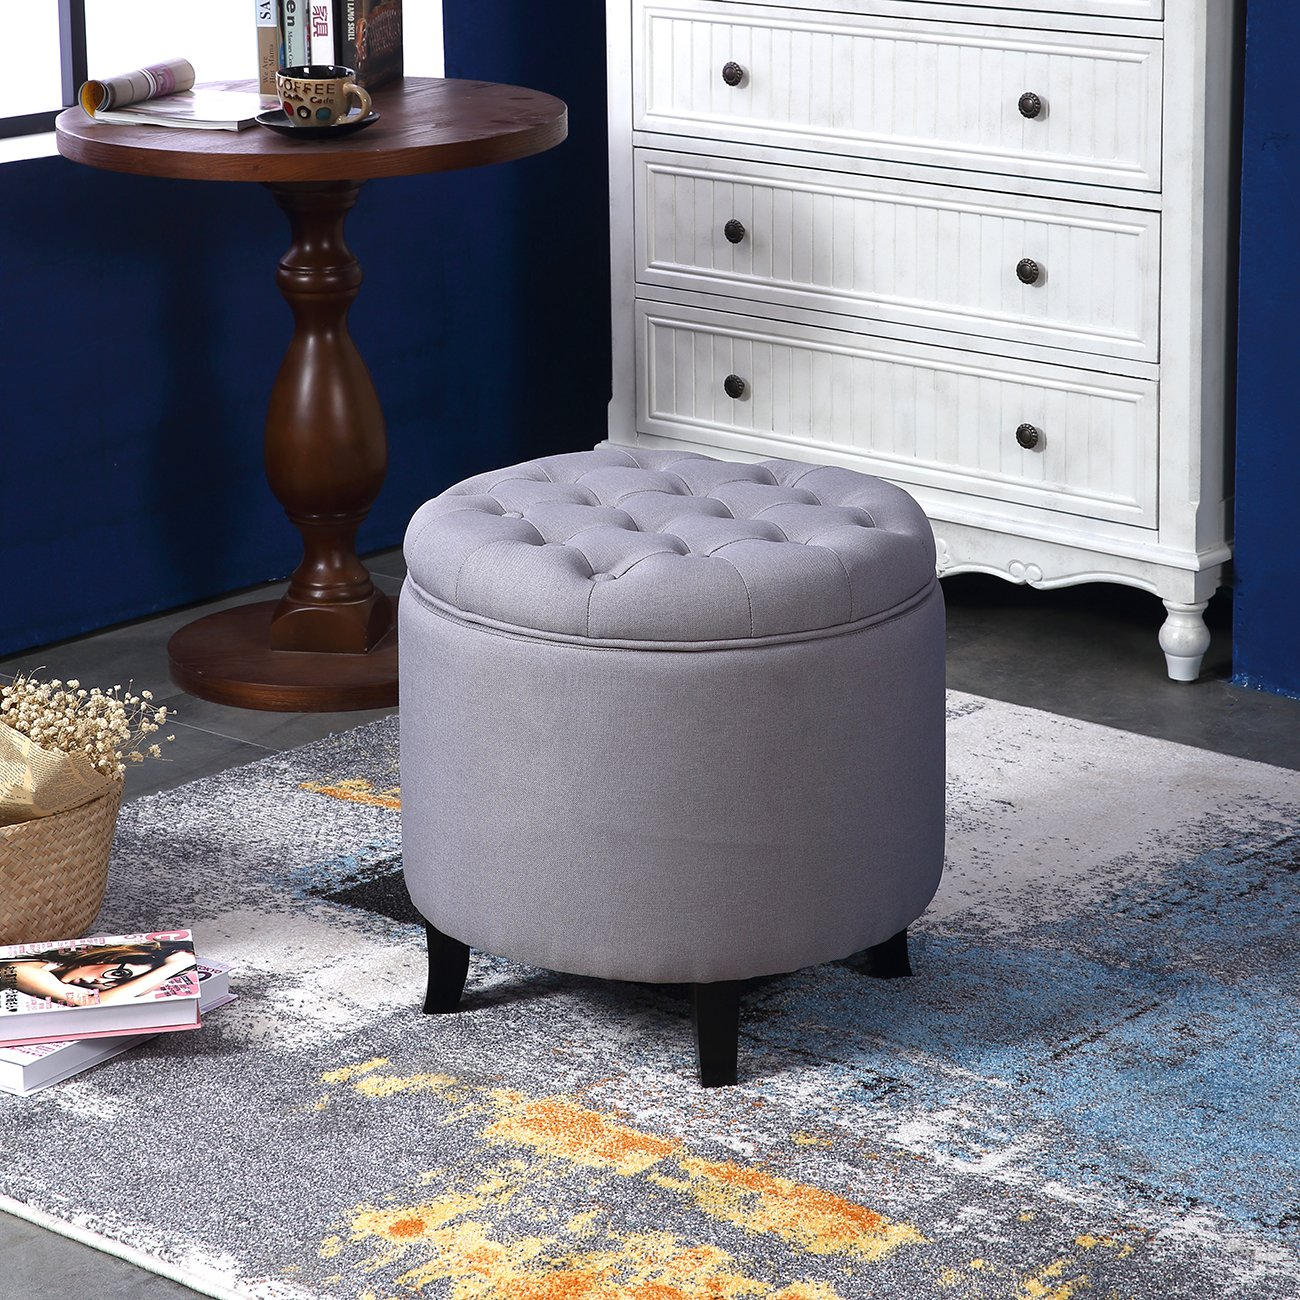 Amazon belleze nailhead round tufted storage ottoman large amazon belleze nailhead round tufted storage ottoman large footrest stool coffee table lift top gray kitchen dining geotapseo Images